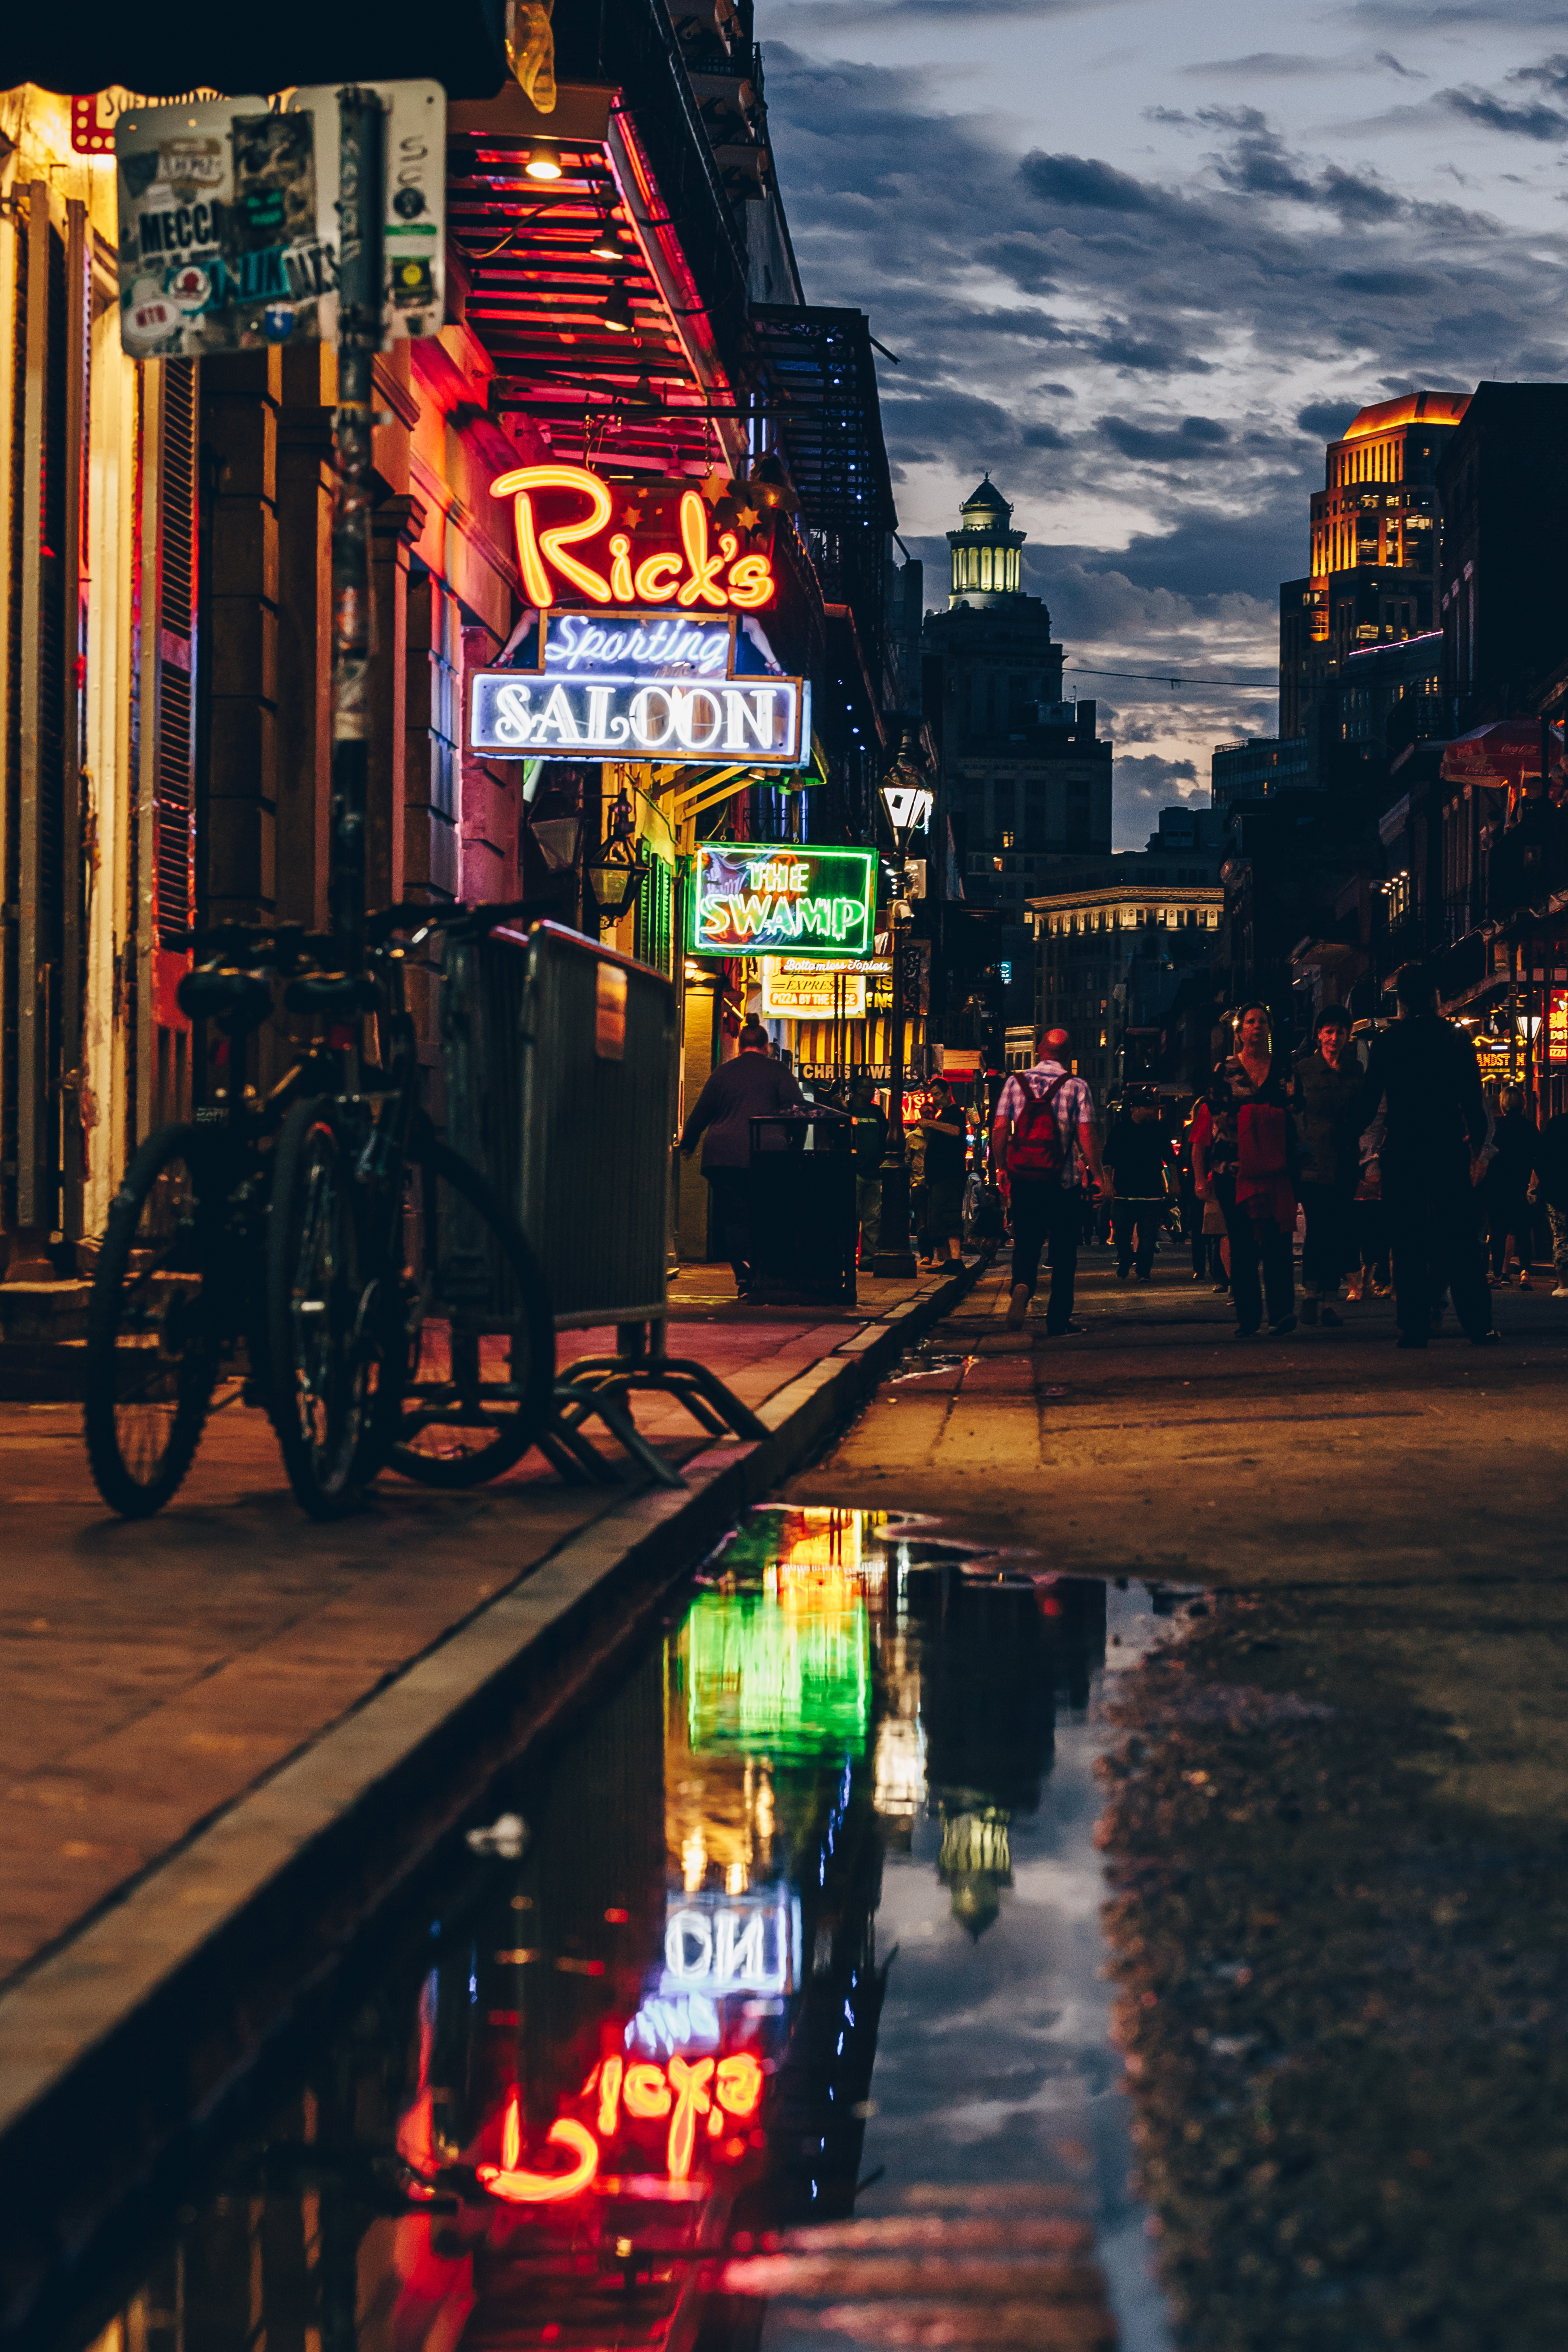 Wing_Hei_Emily_Cheng_Assignment_3_Travel_Photography_New_Orleans_Neon_Lights-3